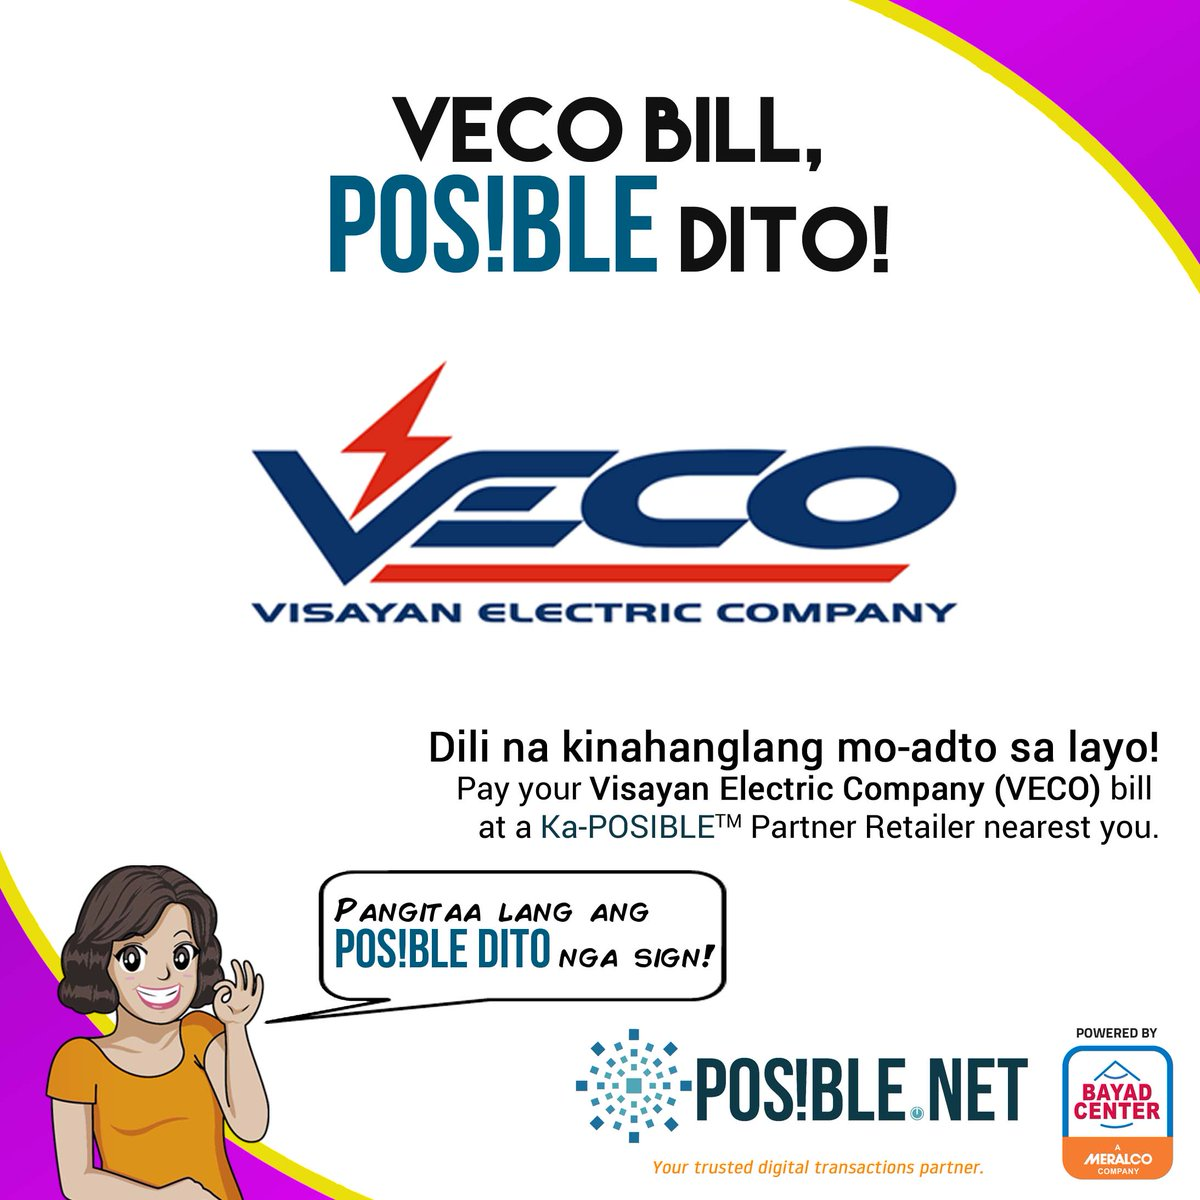 test Twitter Media - Dili na kinahanglang mo-adto sa layo! Pay your @VECO_Cebu bills through https://t.co/BFj9Gq9CB3 at a #KaPOSIBLE partner retailer nearest you. Just look for the #POSIBLEdito sign in your area! Read more about paying your VECO bill here: https://t.co/pyQCkD639S https://t.co/GqRcaRxerR